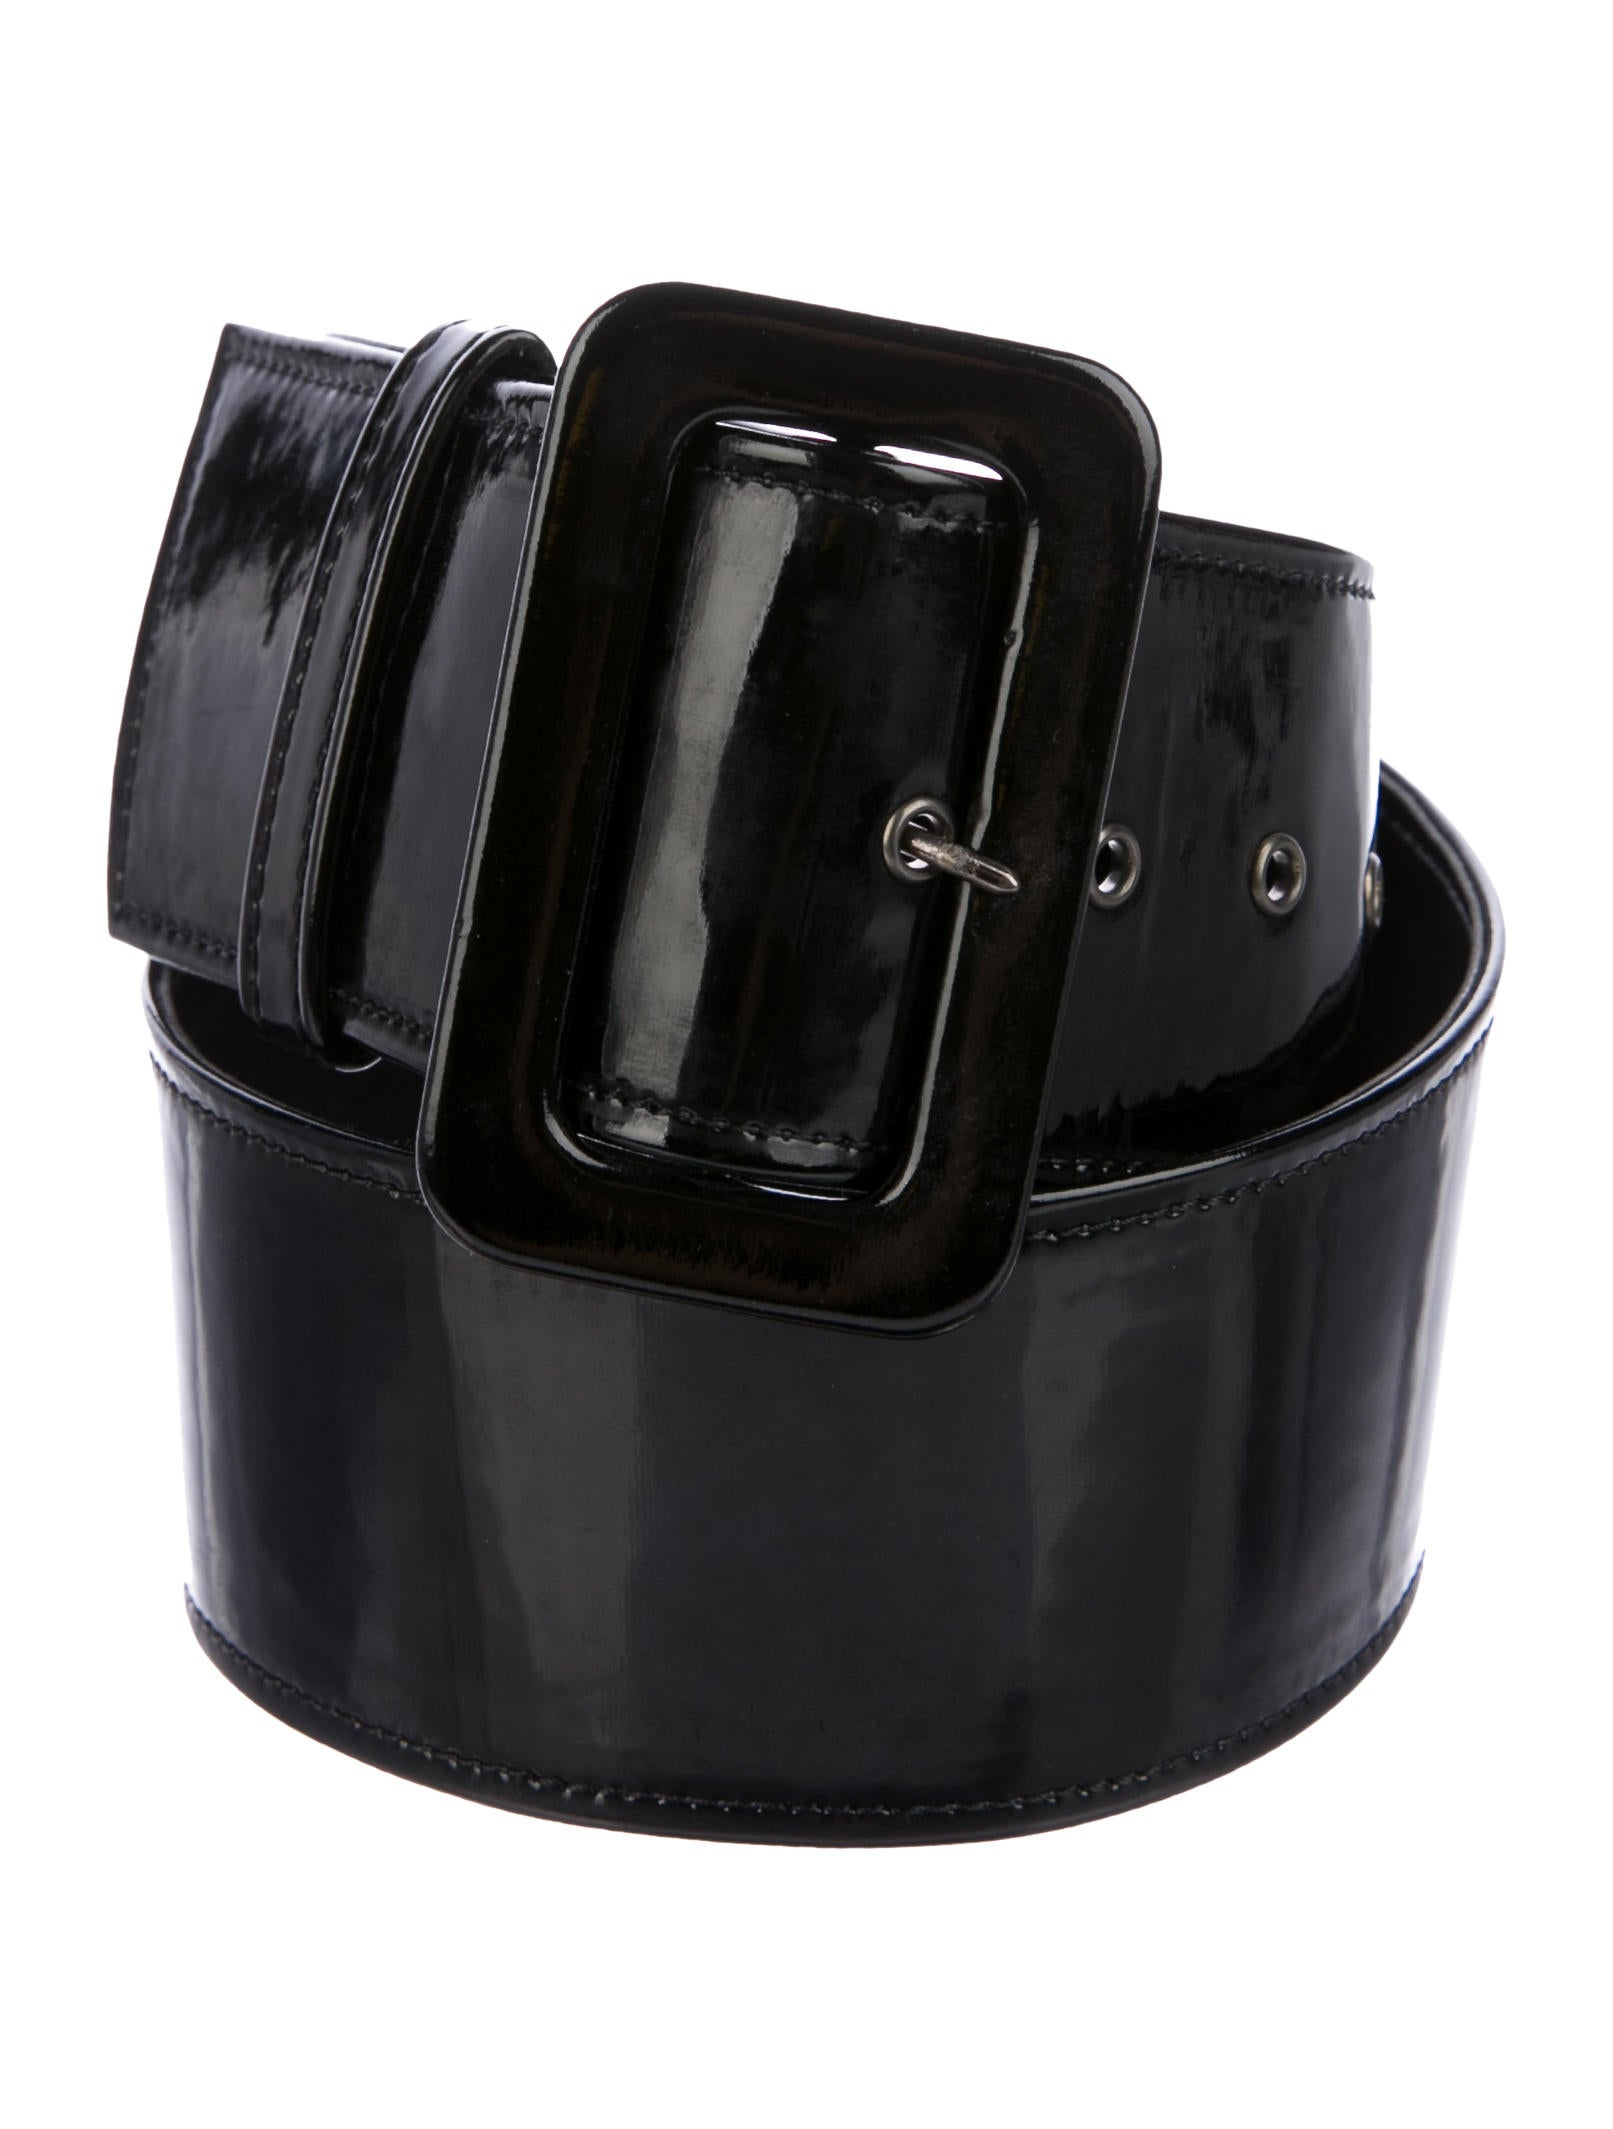 Small Leather Goods - Belts Andrew Gn rOqfFEa